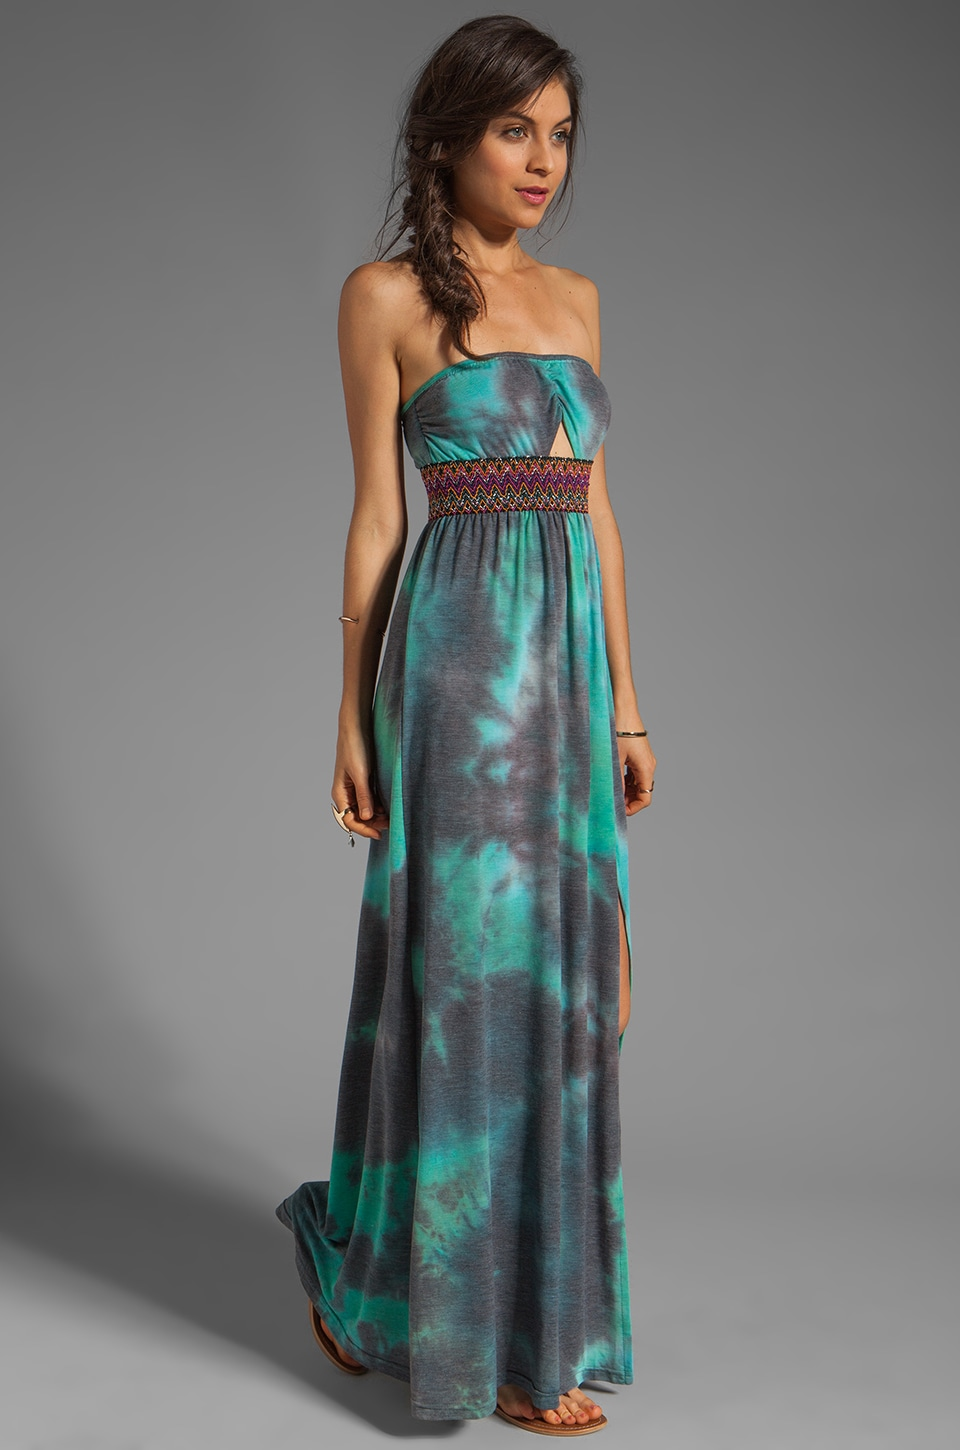 Gypsy Junkies Talulah Maxi Dress in Teal Tie Dye